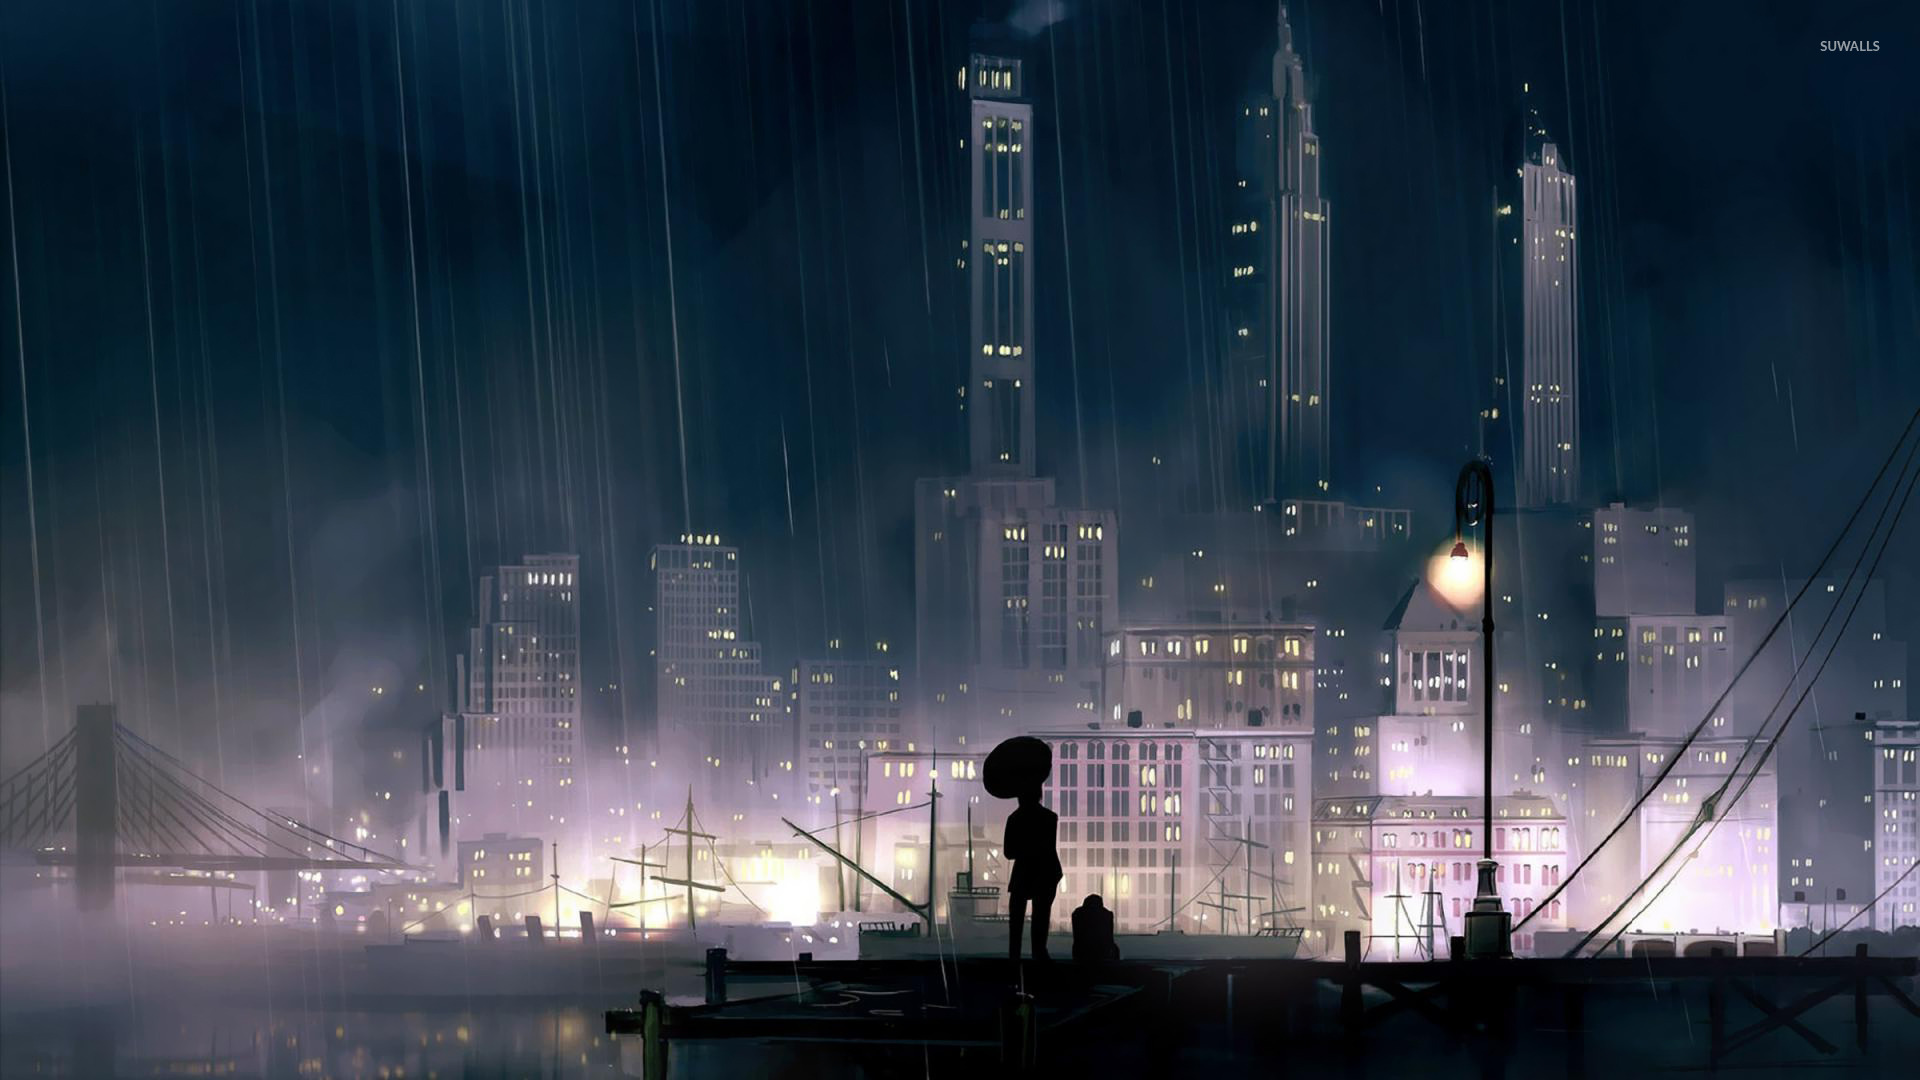 Rainy city at night wallpaper - Fantasy wallpapers - #16438